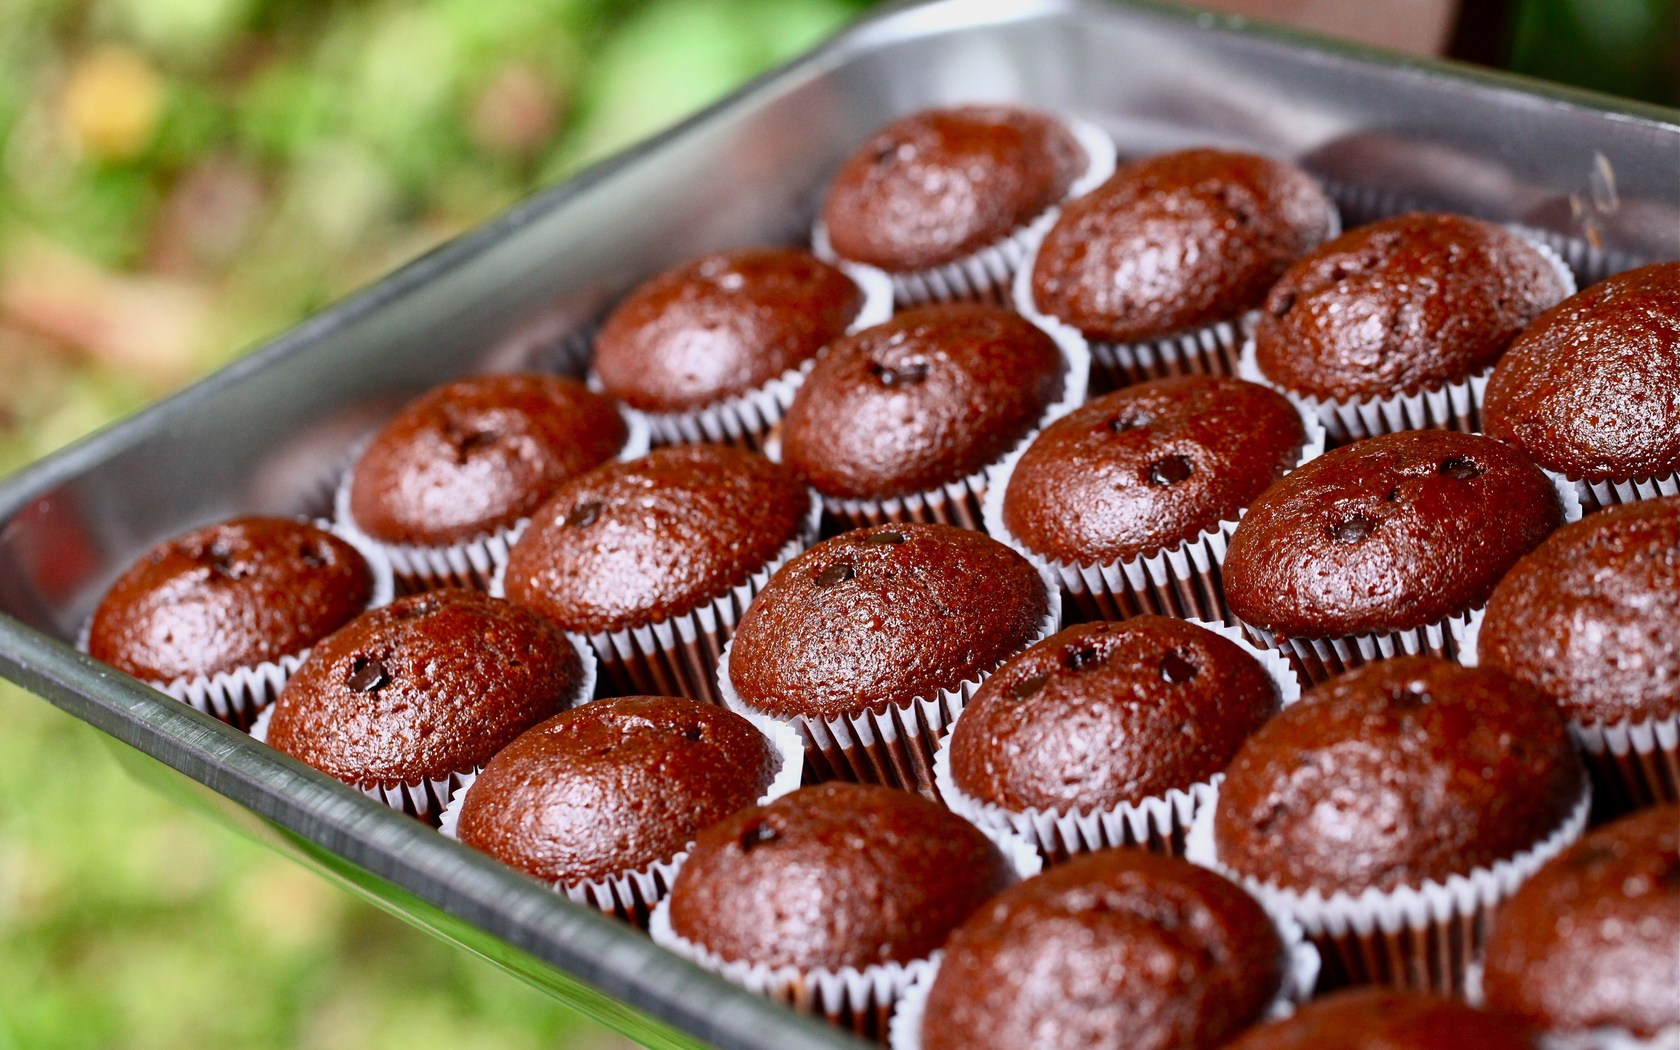 Sweets Delicious Cupcakes | 1680 x 1050 | Download | Close